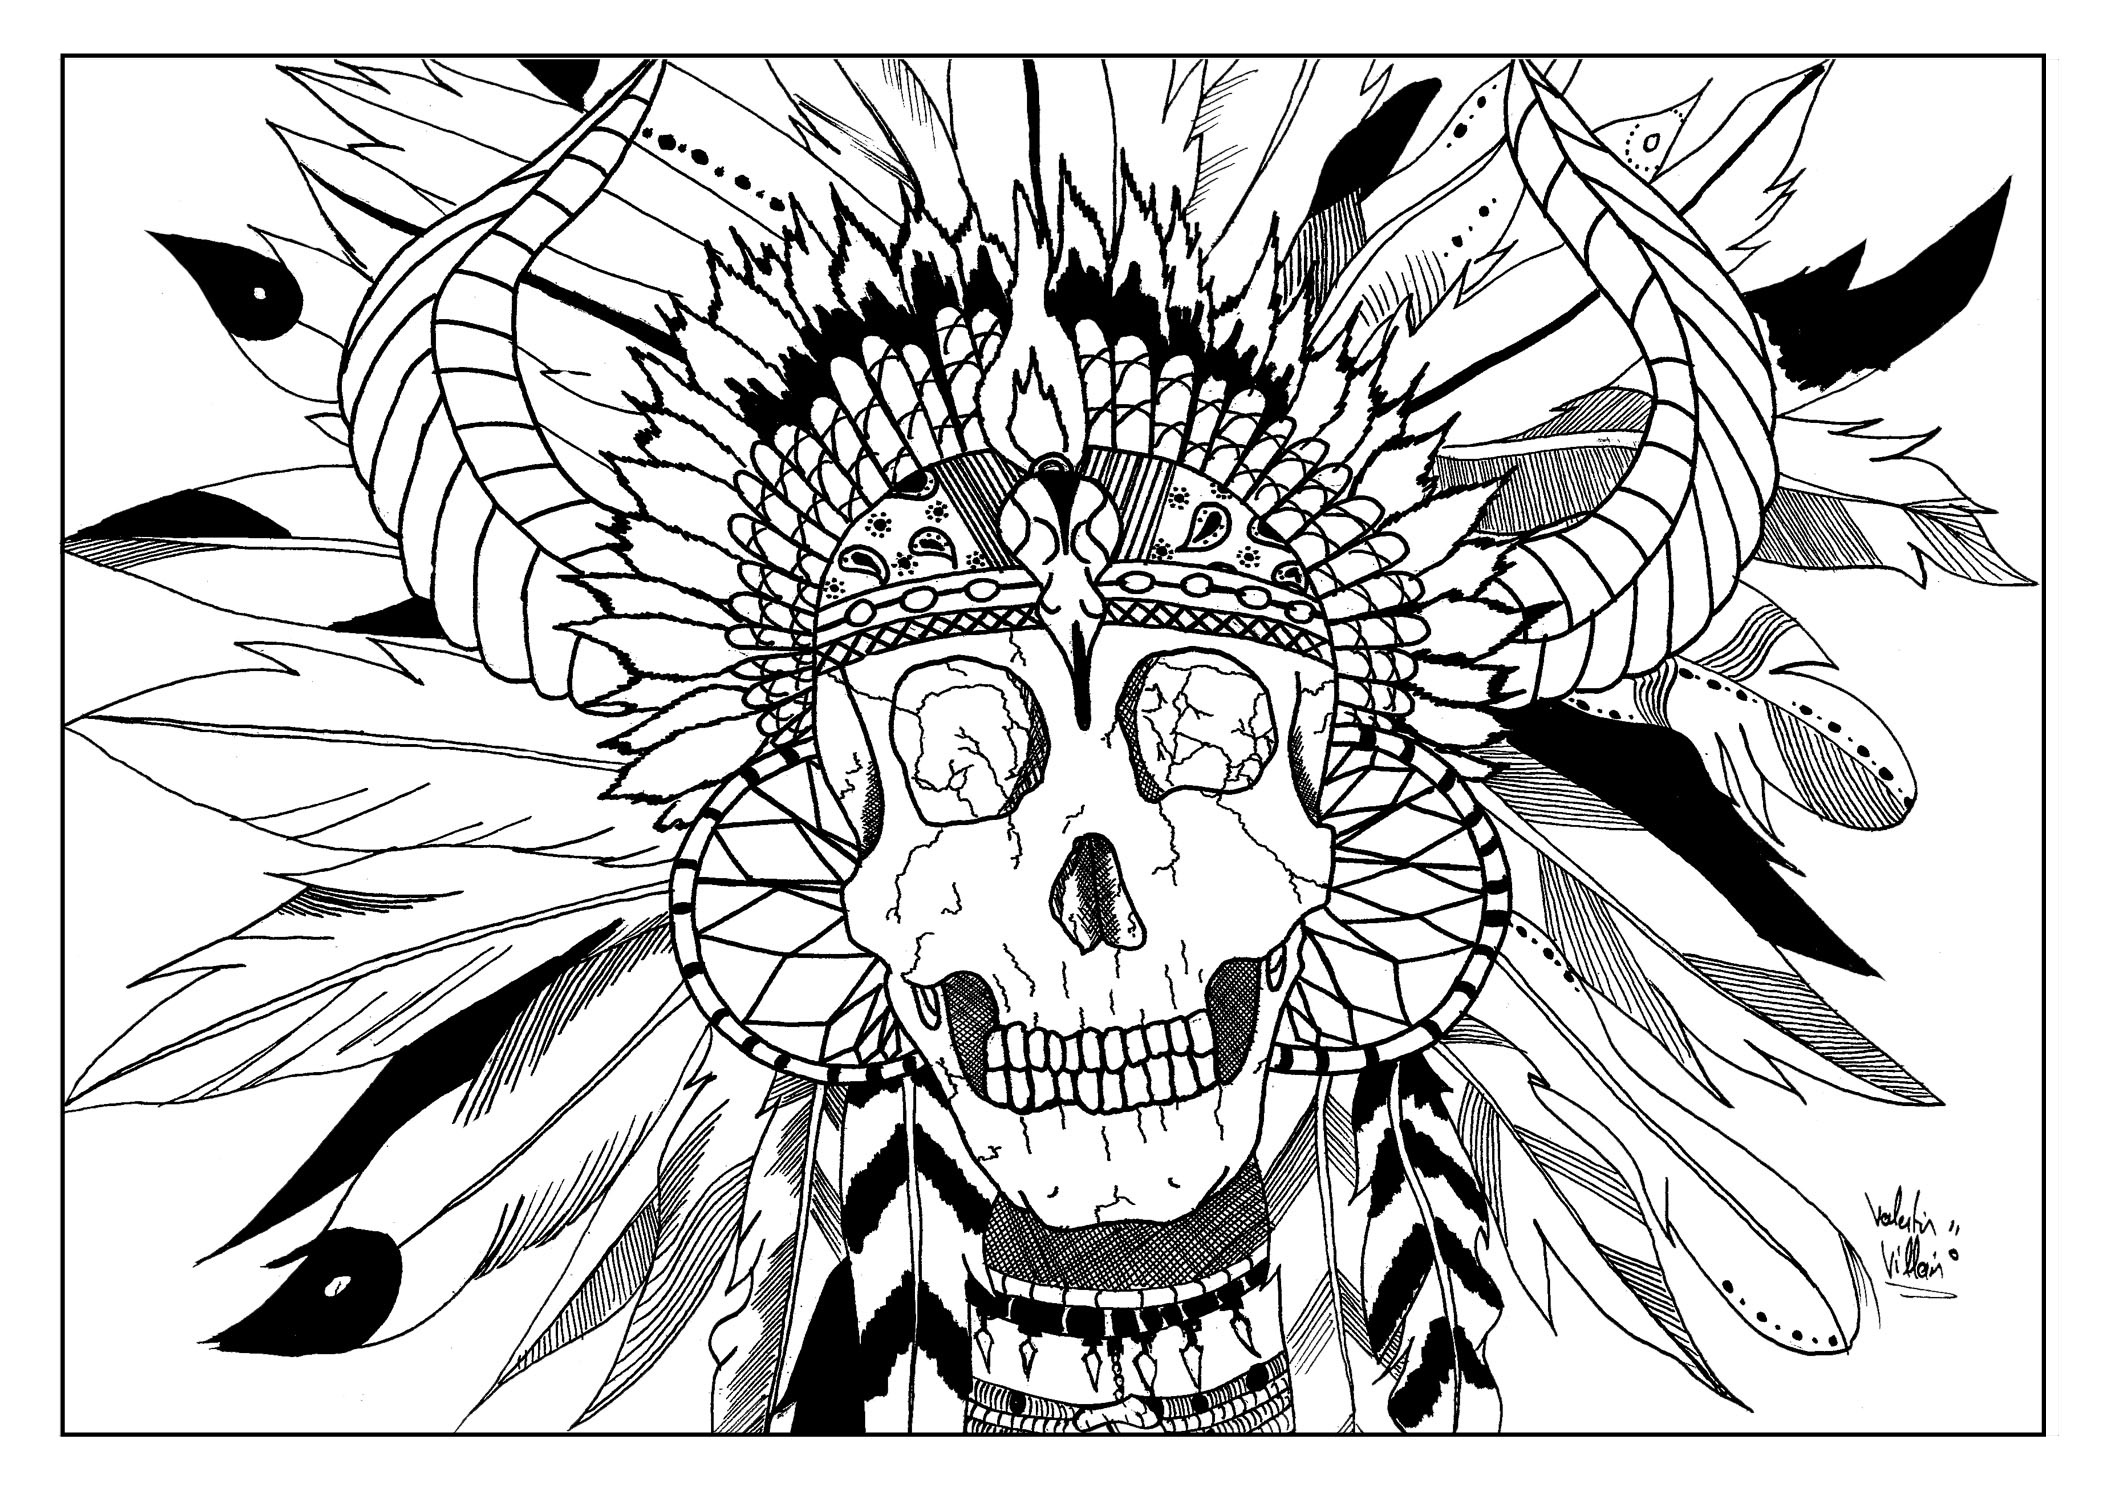 native american coloring sheets native american coloring pages to download and print for free sheets native american coloring